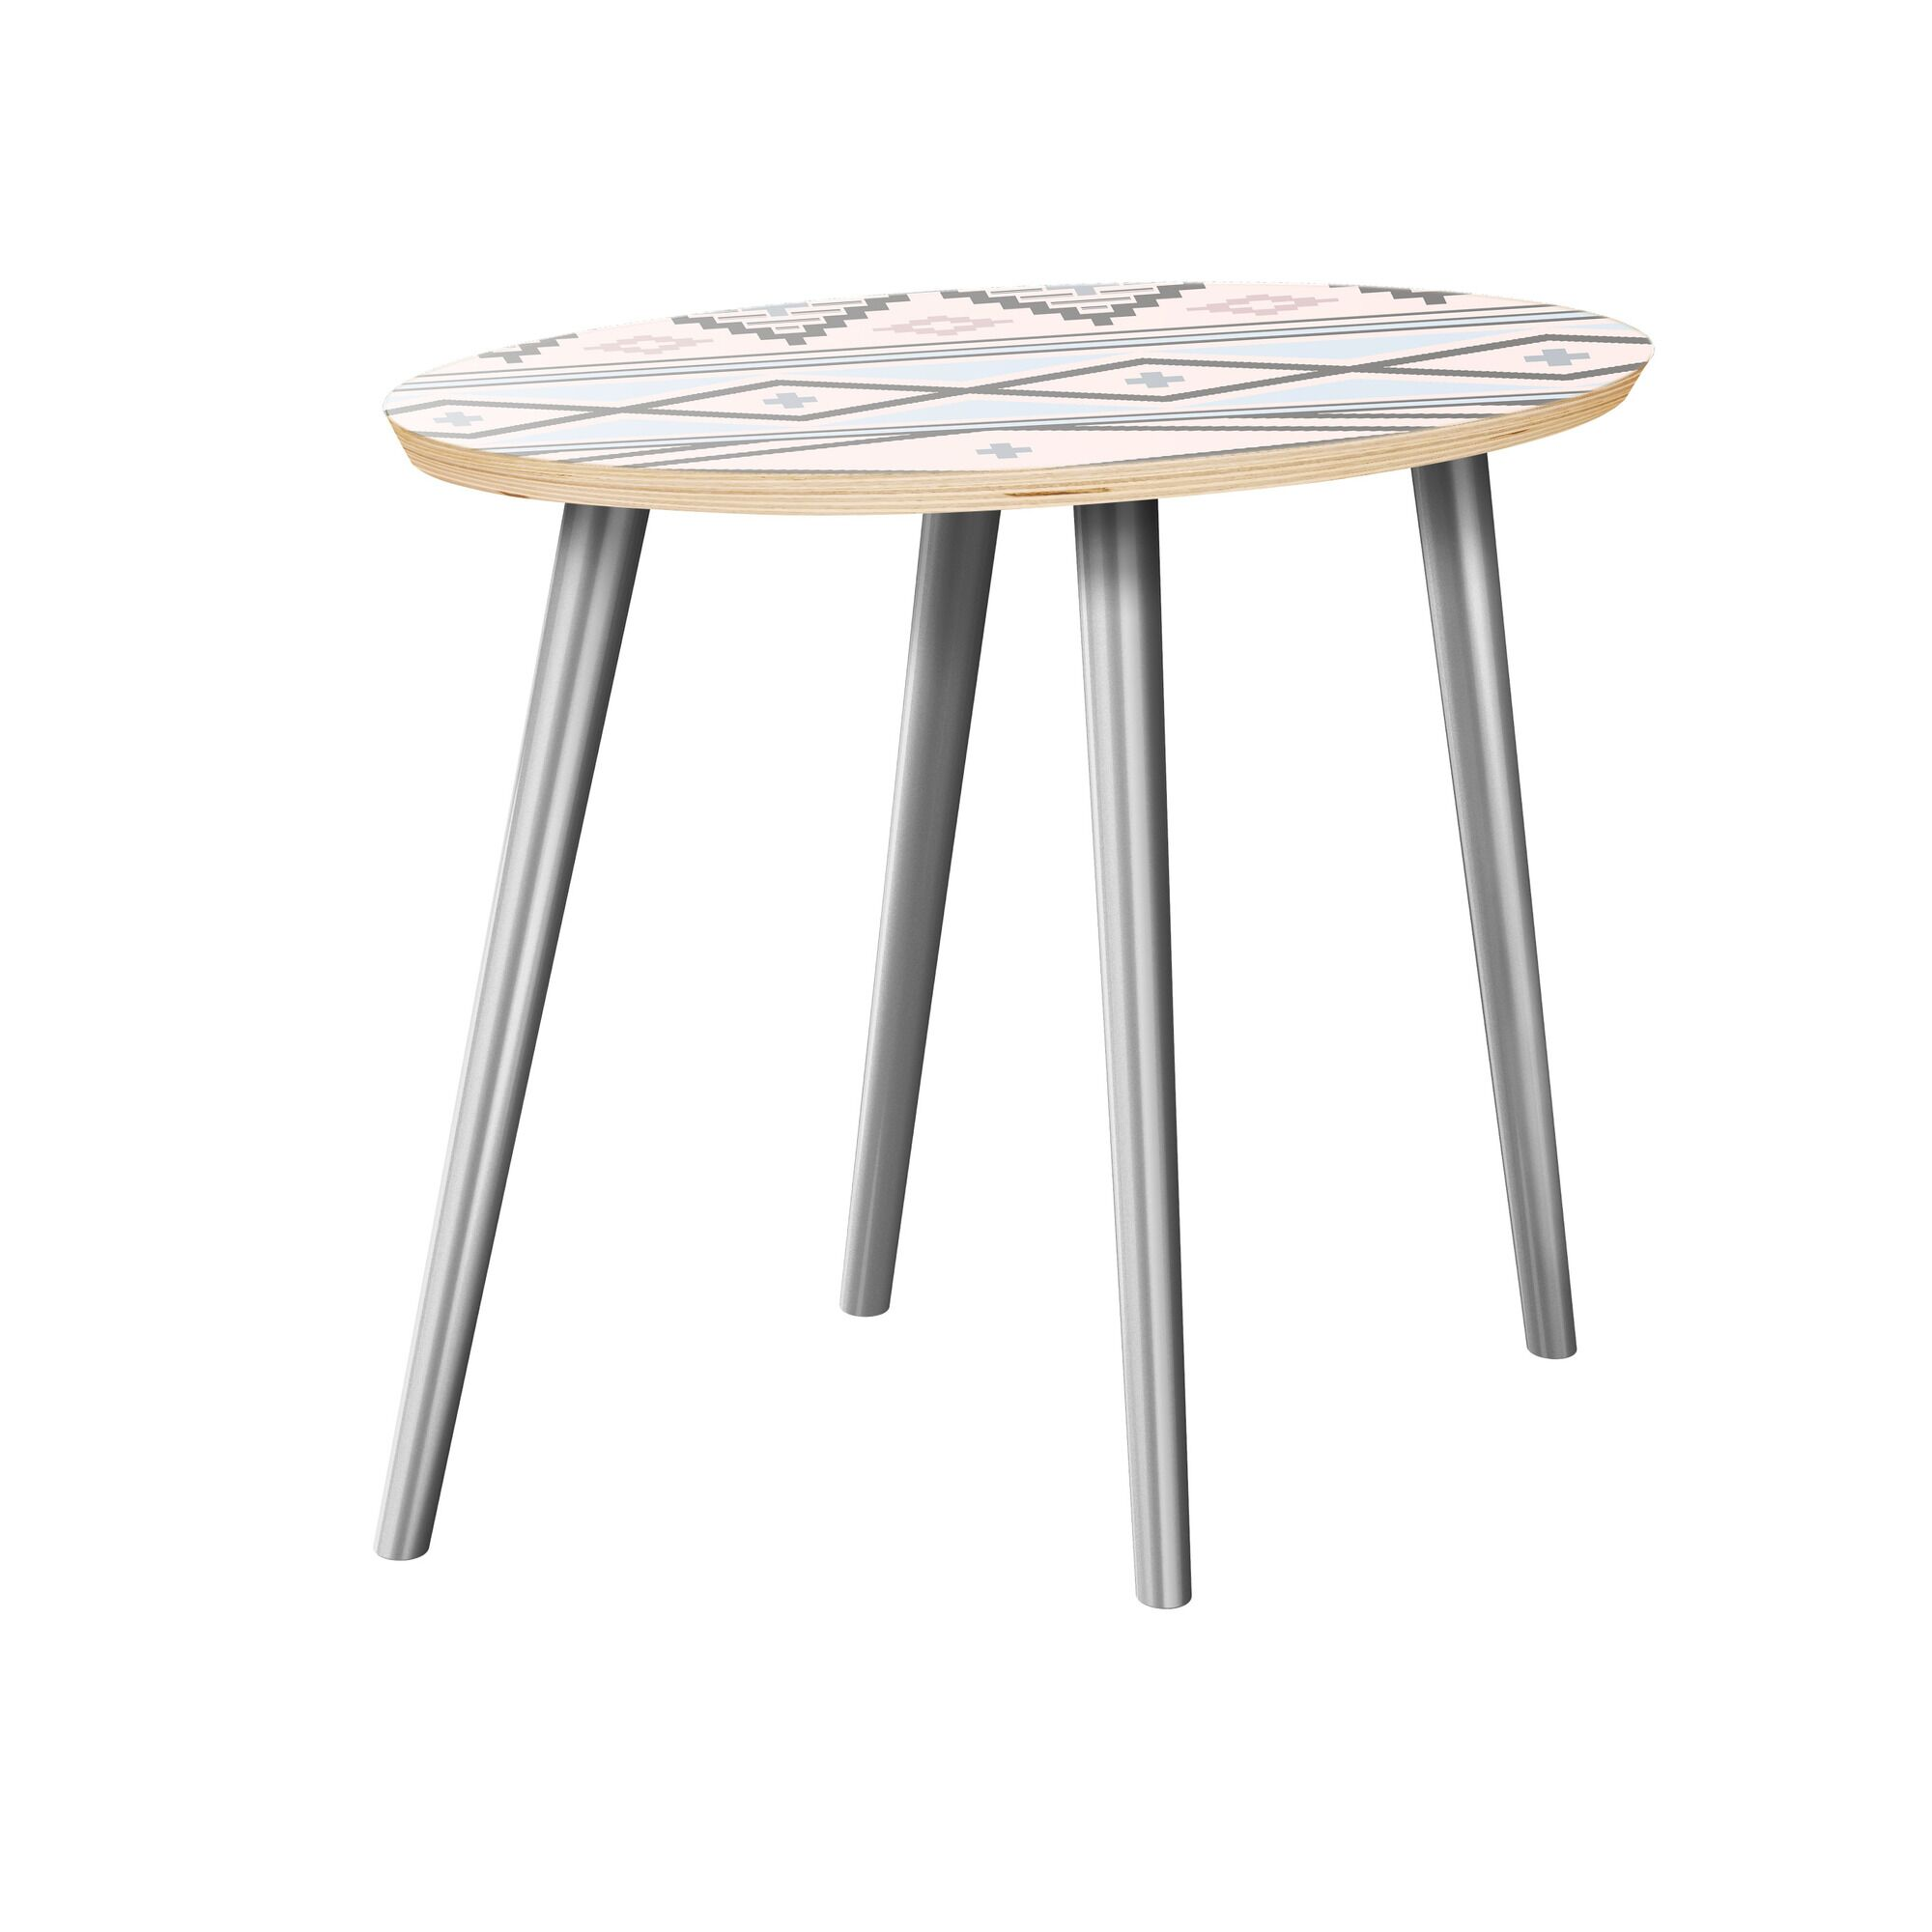 Holdsworth End Table Table Top Boarder Color: Natural, Table Base Color: Chrome, Table Top Color: Pink/Blue